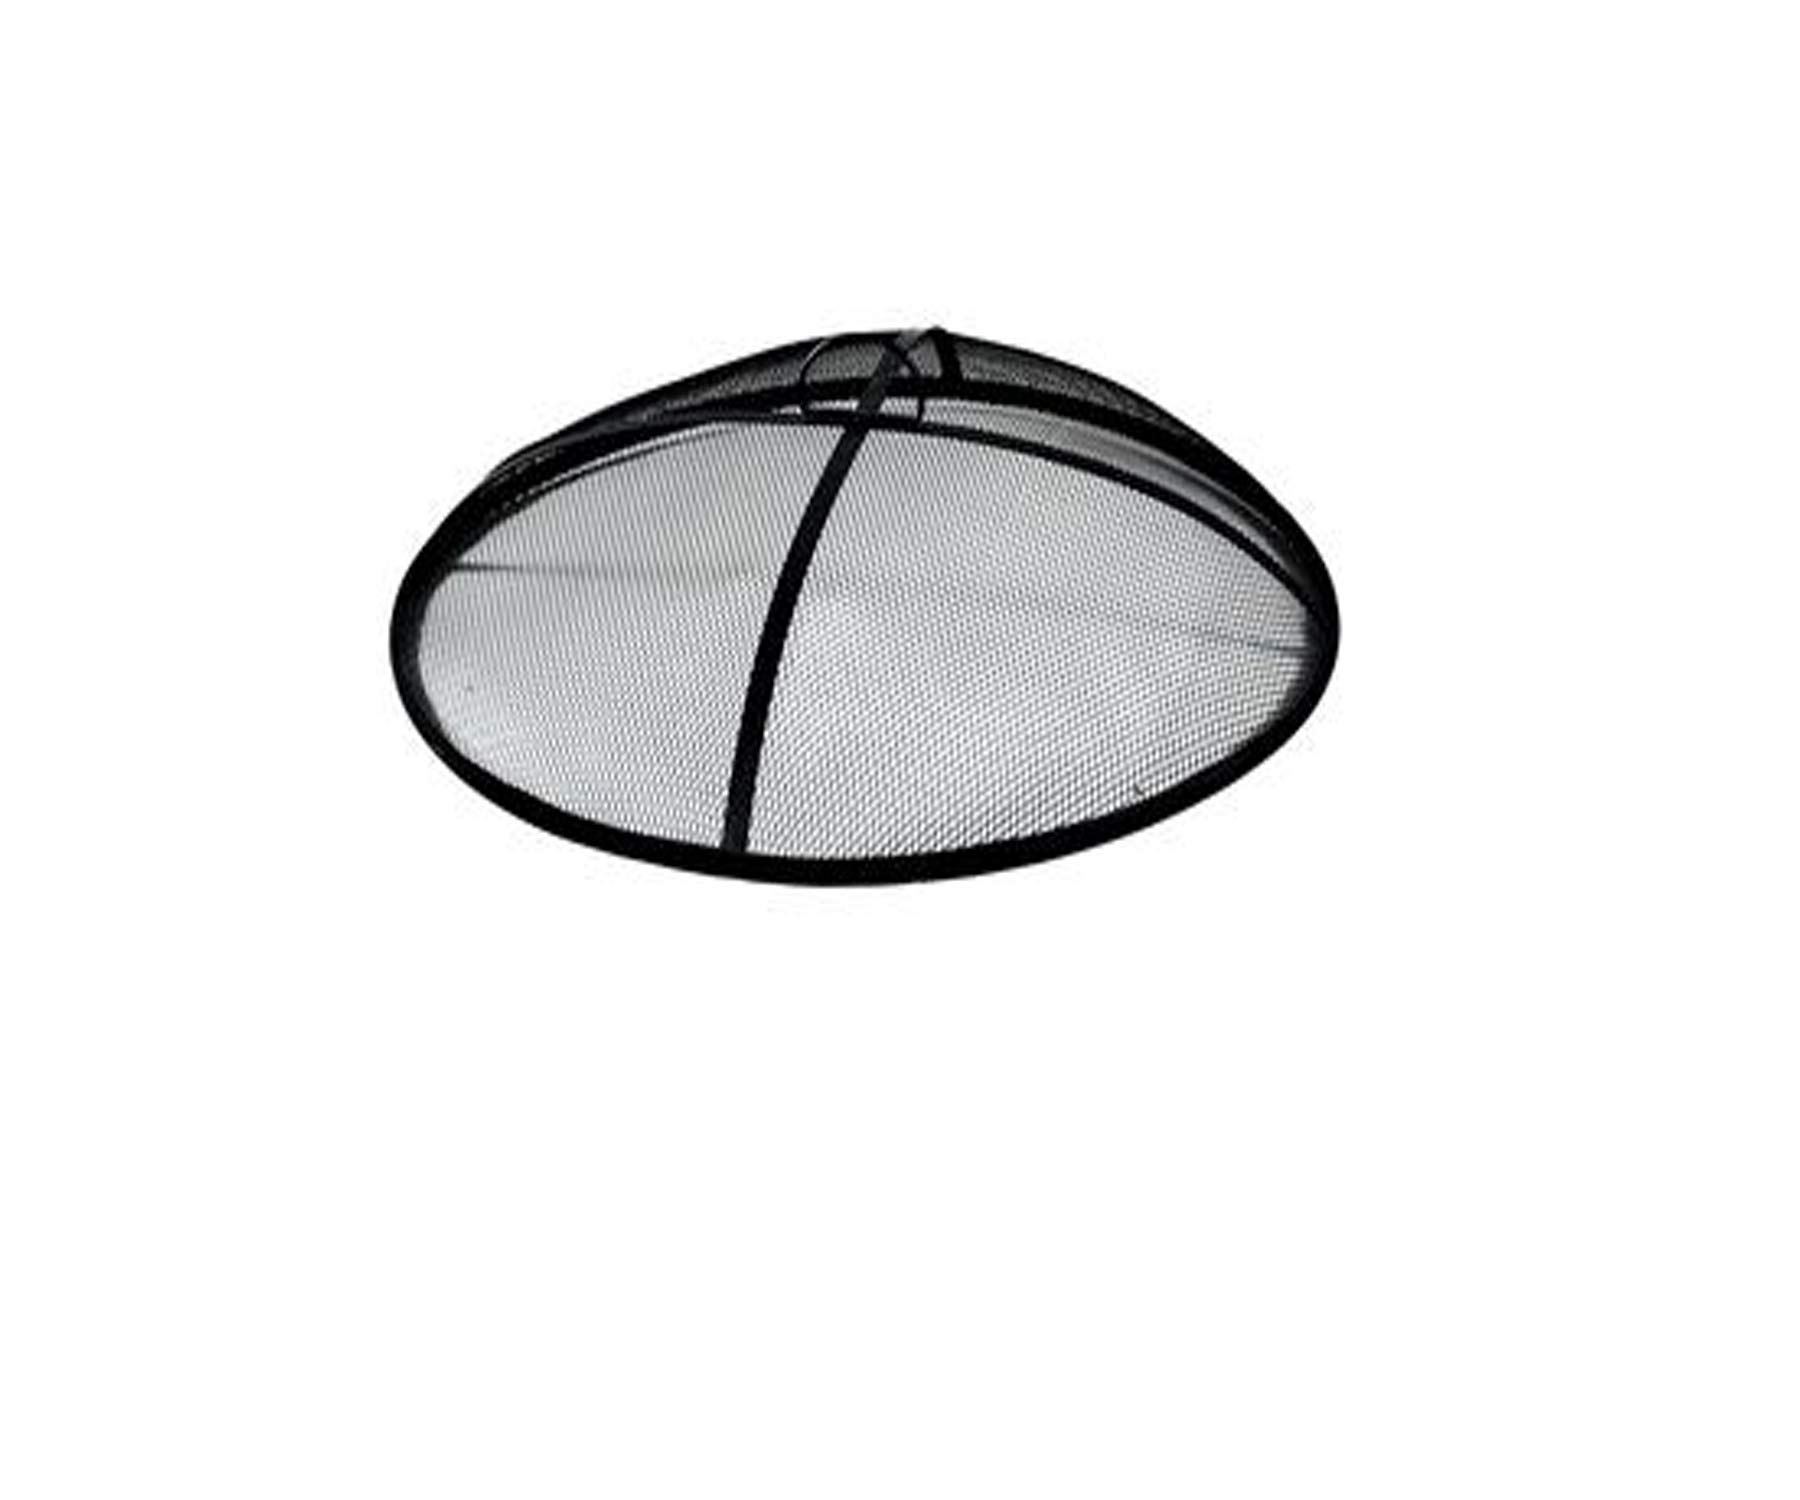 Wisechoice Heavy Duty Iron Mesh Fire Pit Cover | Outdoor Burning Shield, 31 Inch Diameter by Wisechoice